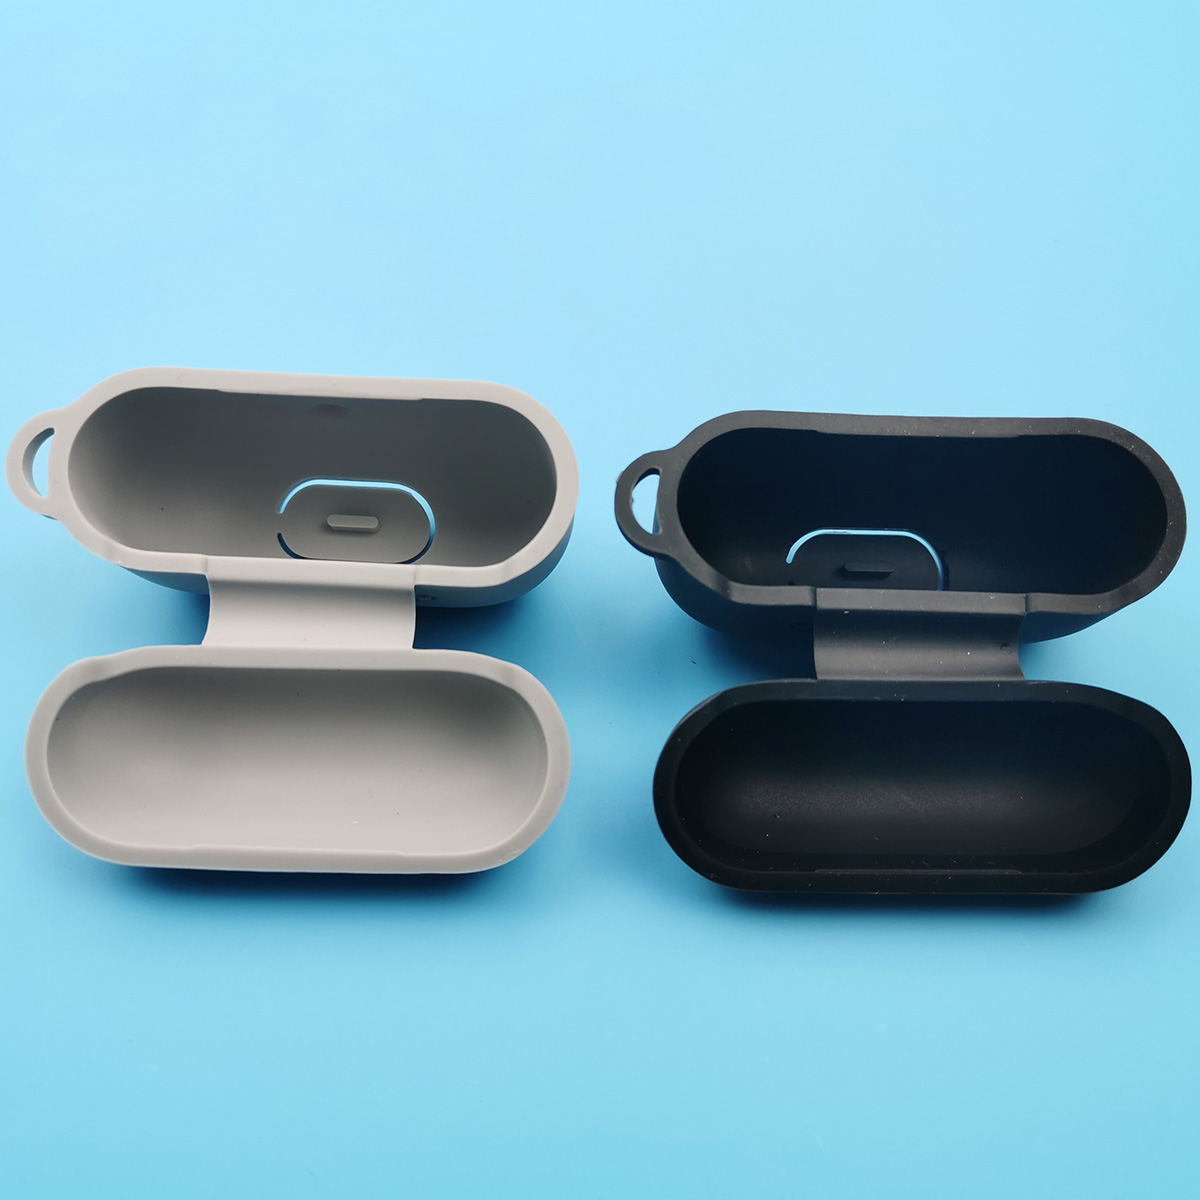 Newest Silicon earphone case third Generation protective silicone cover and skin for airpods case